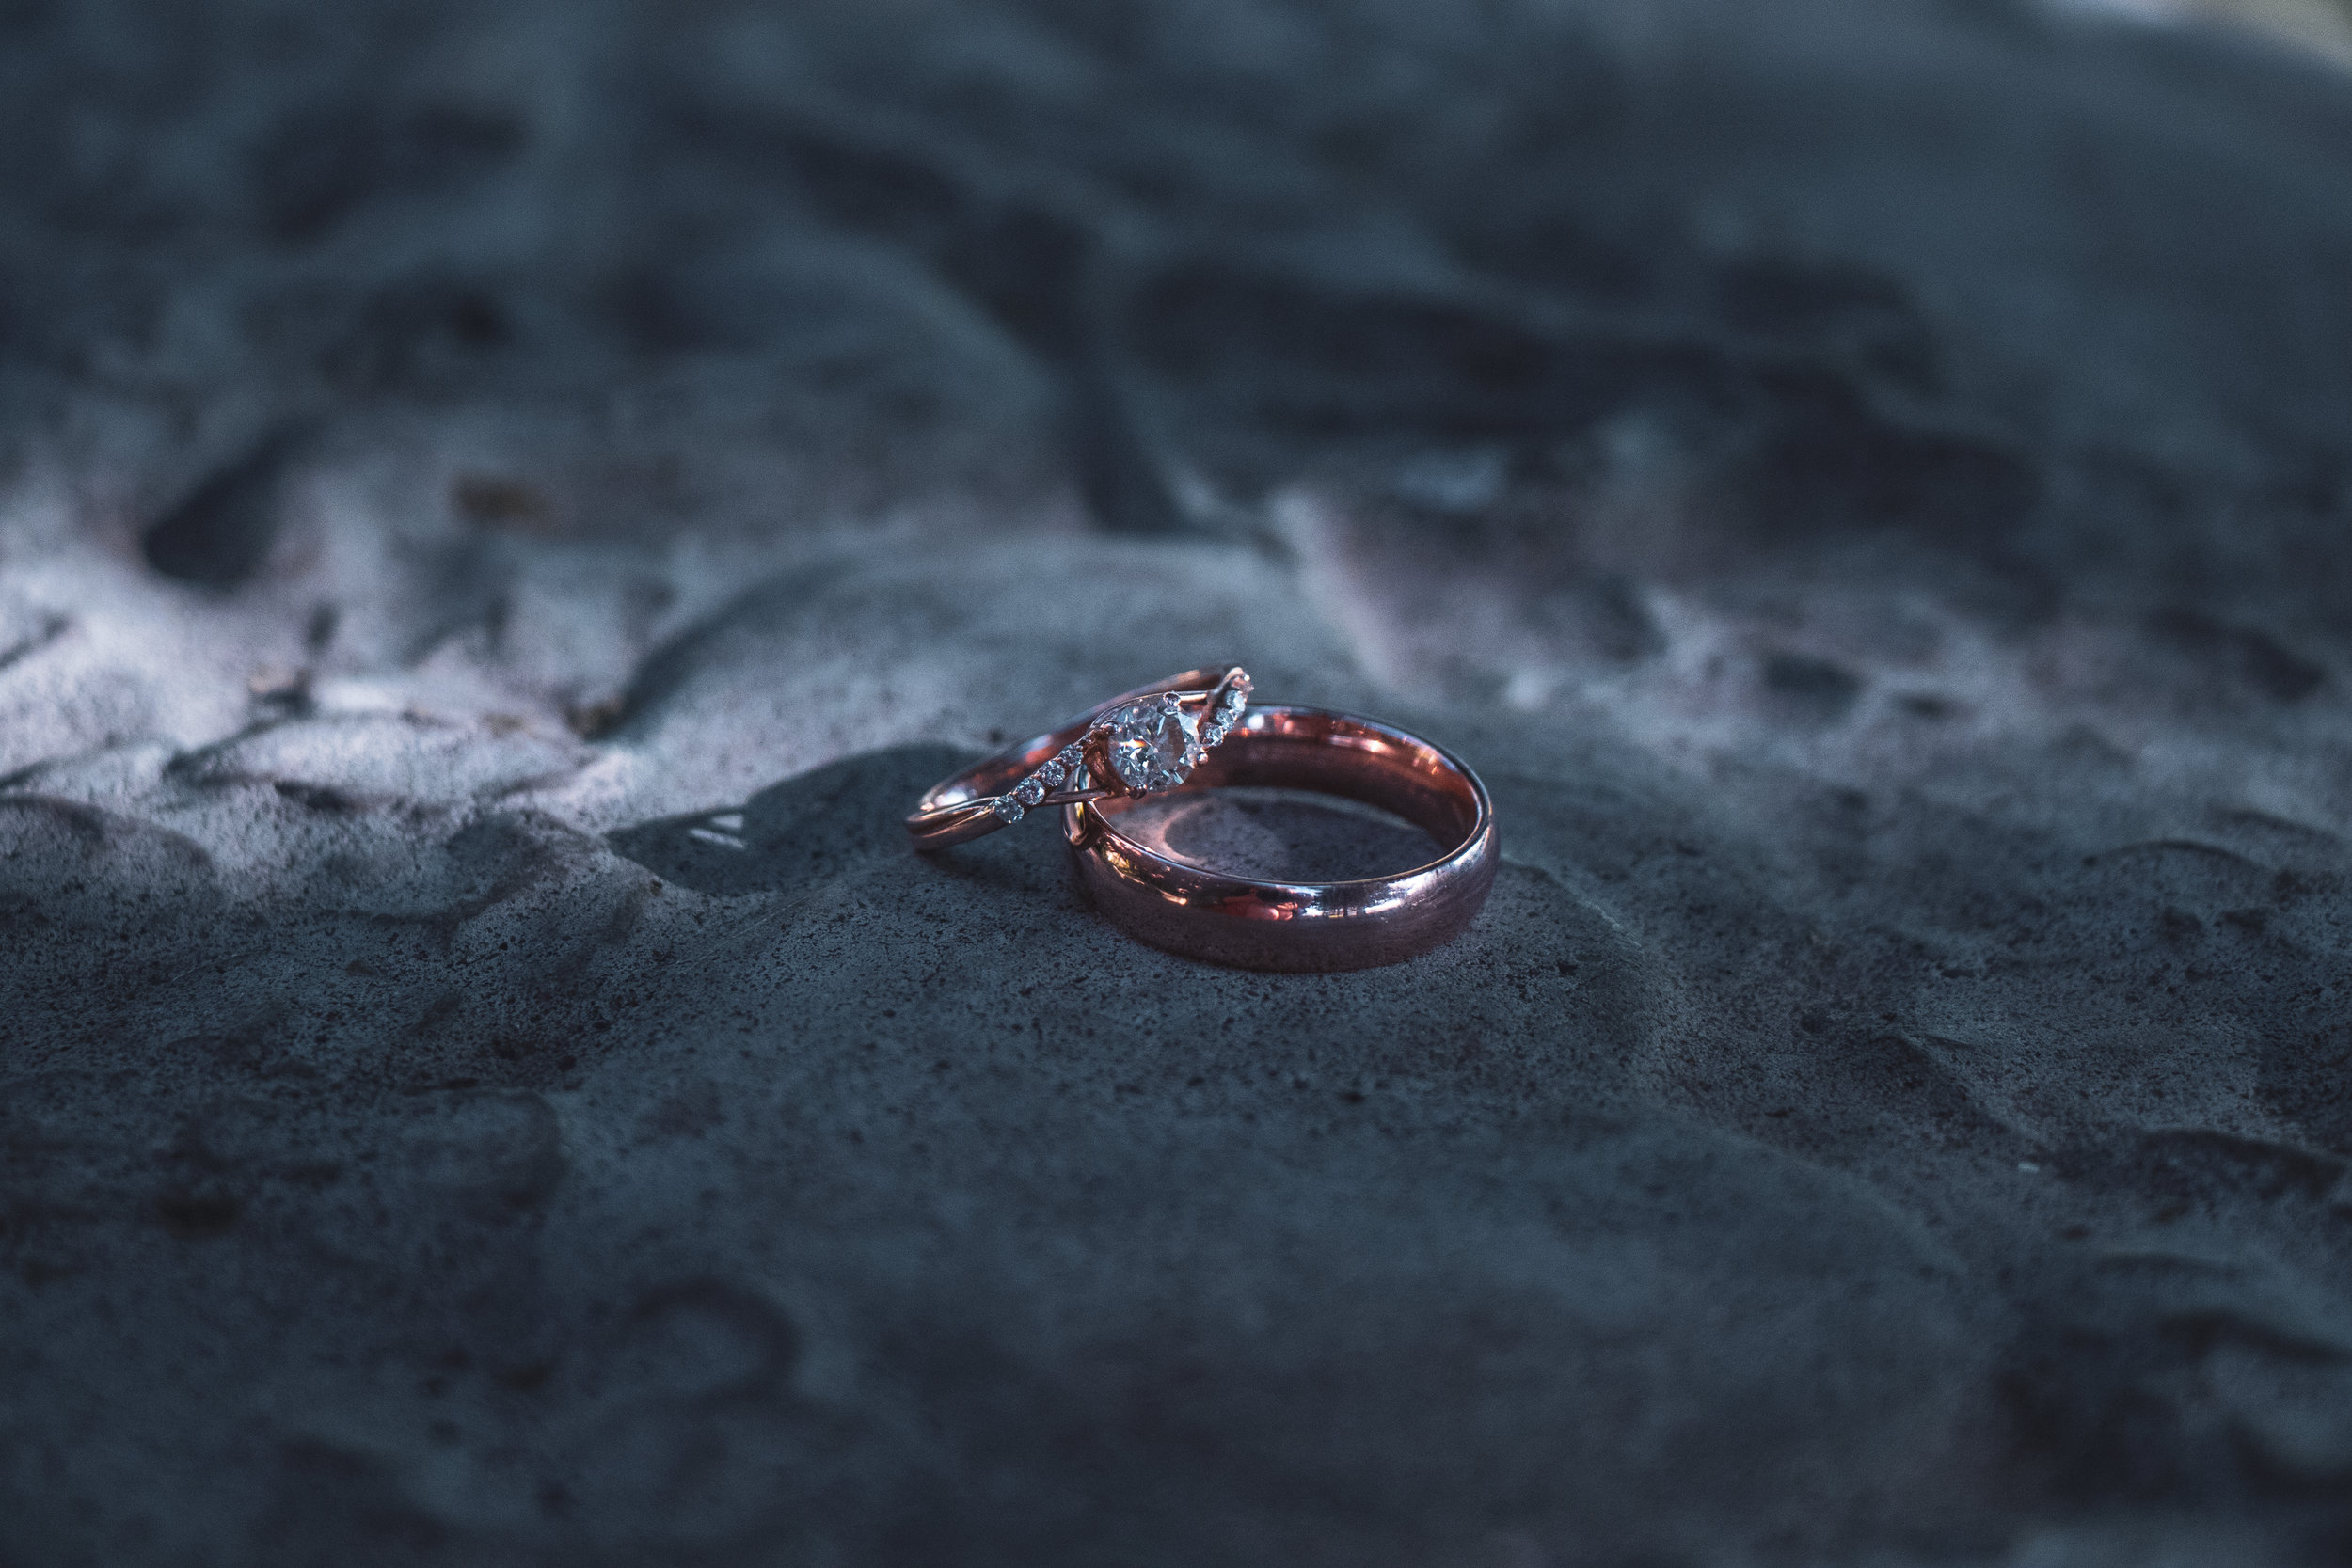 Wedding rings on a cool, stone bench